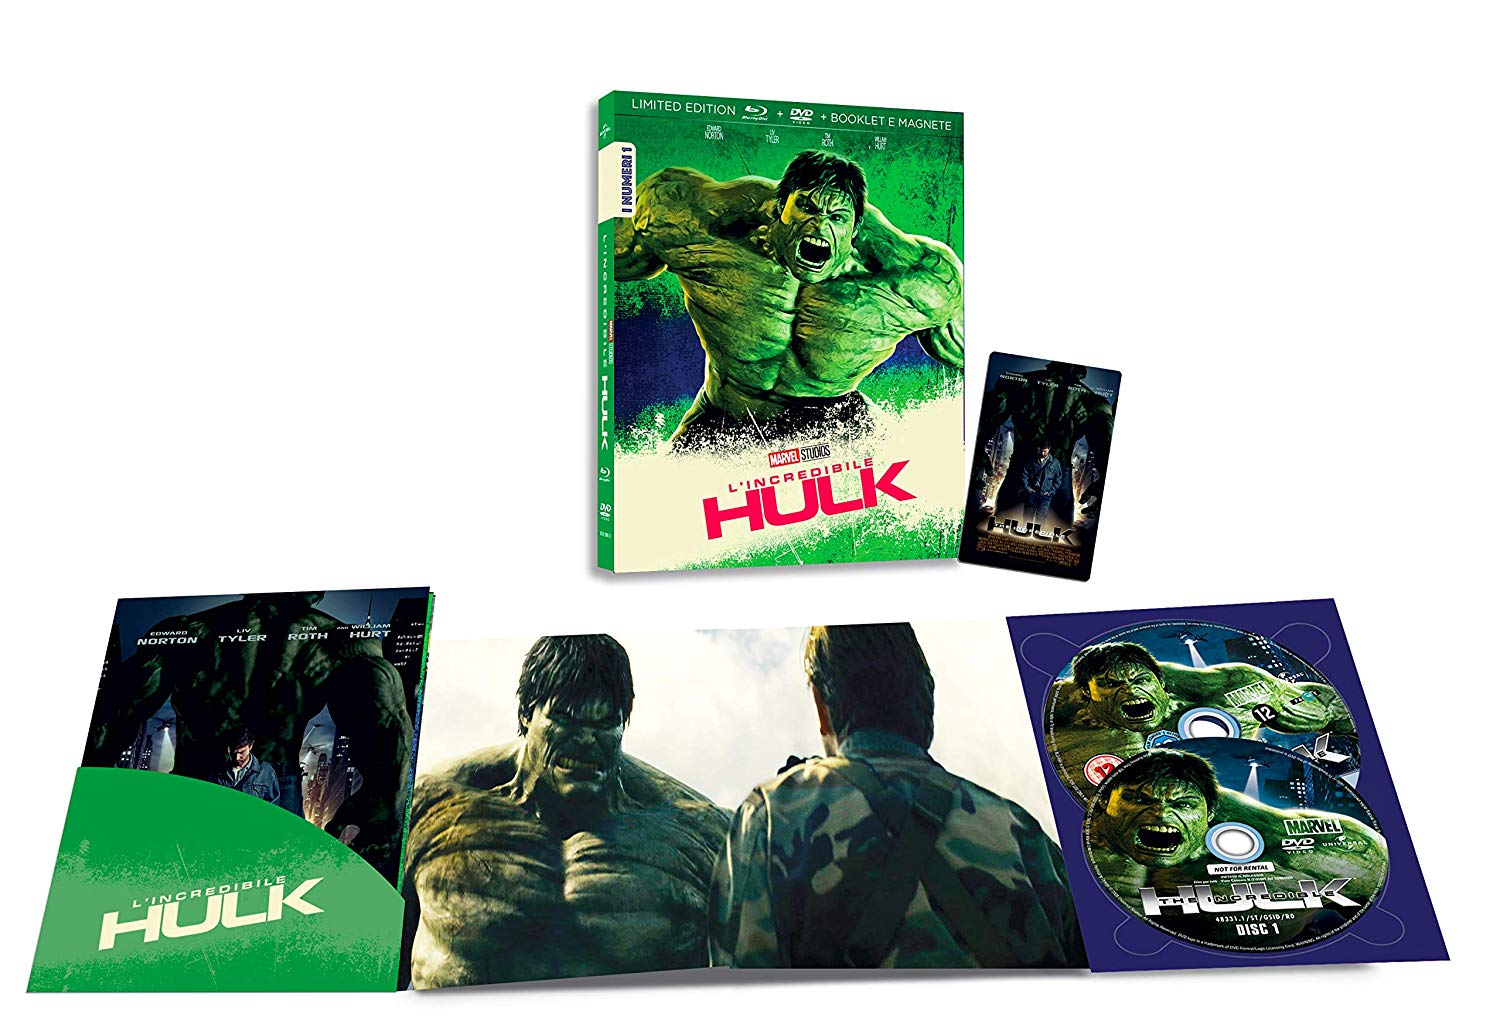 L'INCREDIBILE HULK (BLU-RAY+DVD)